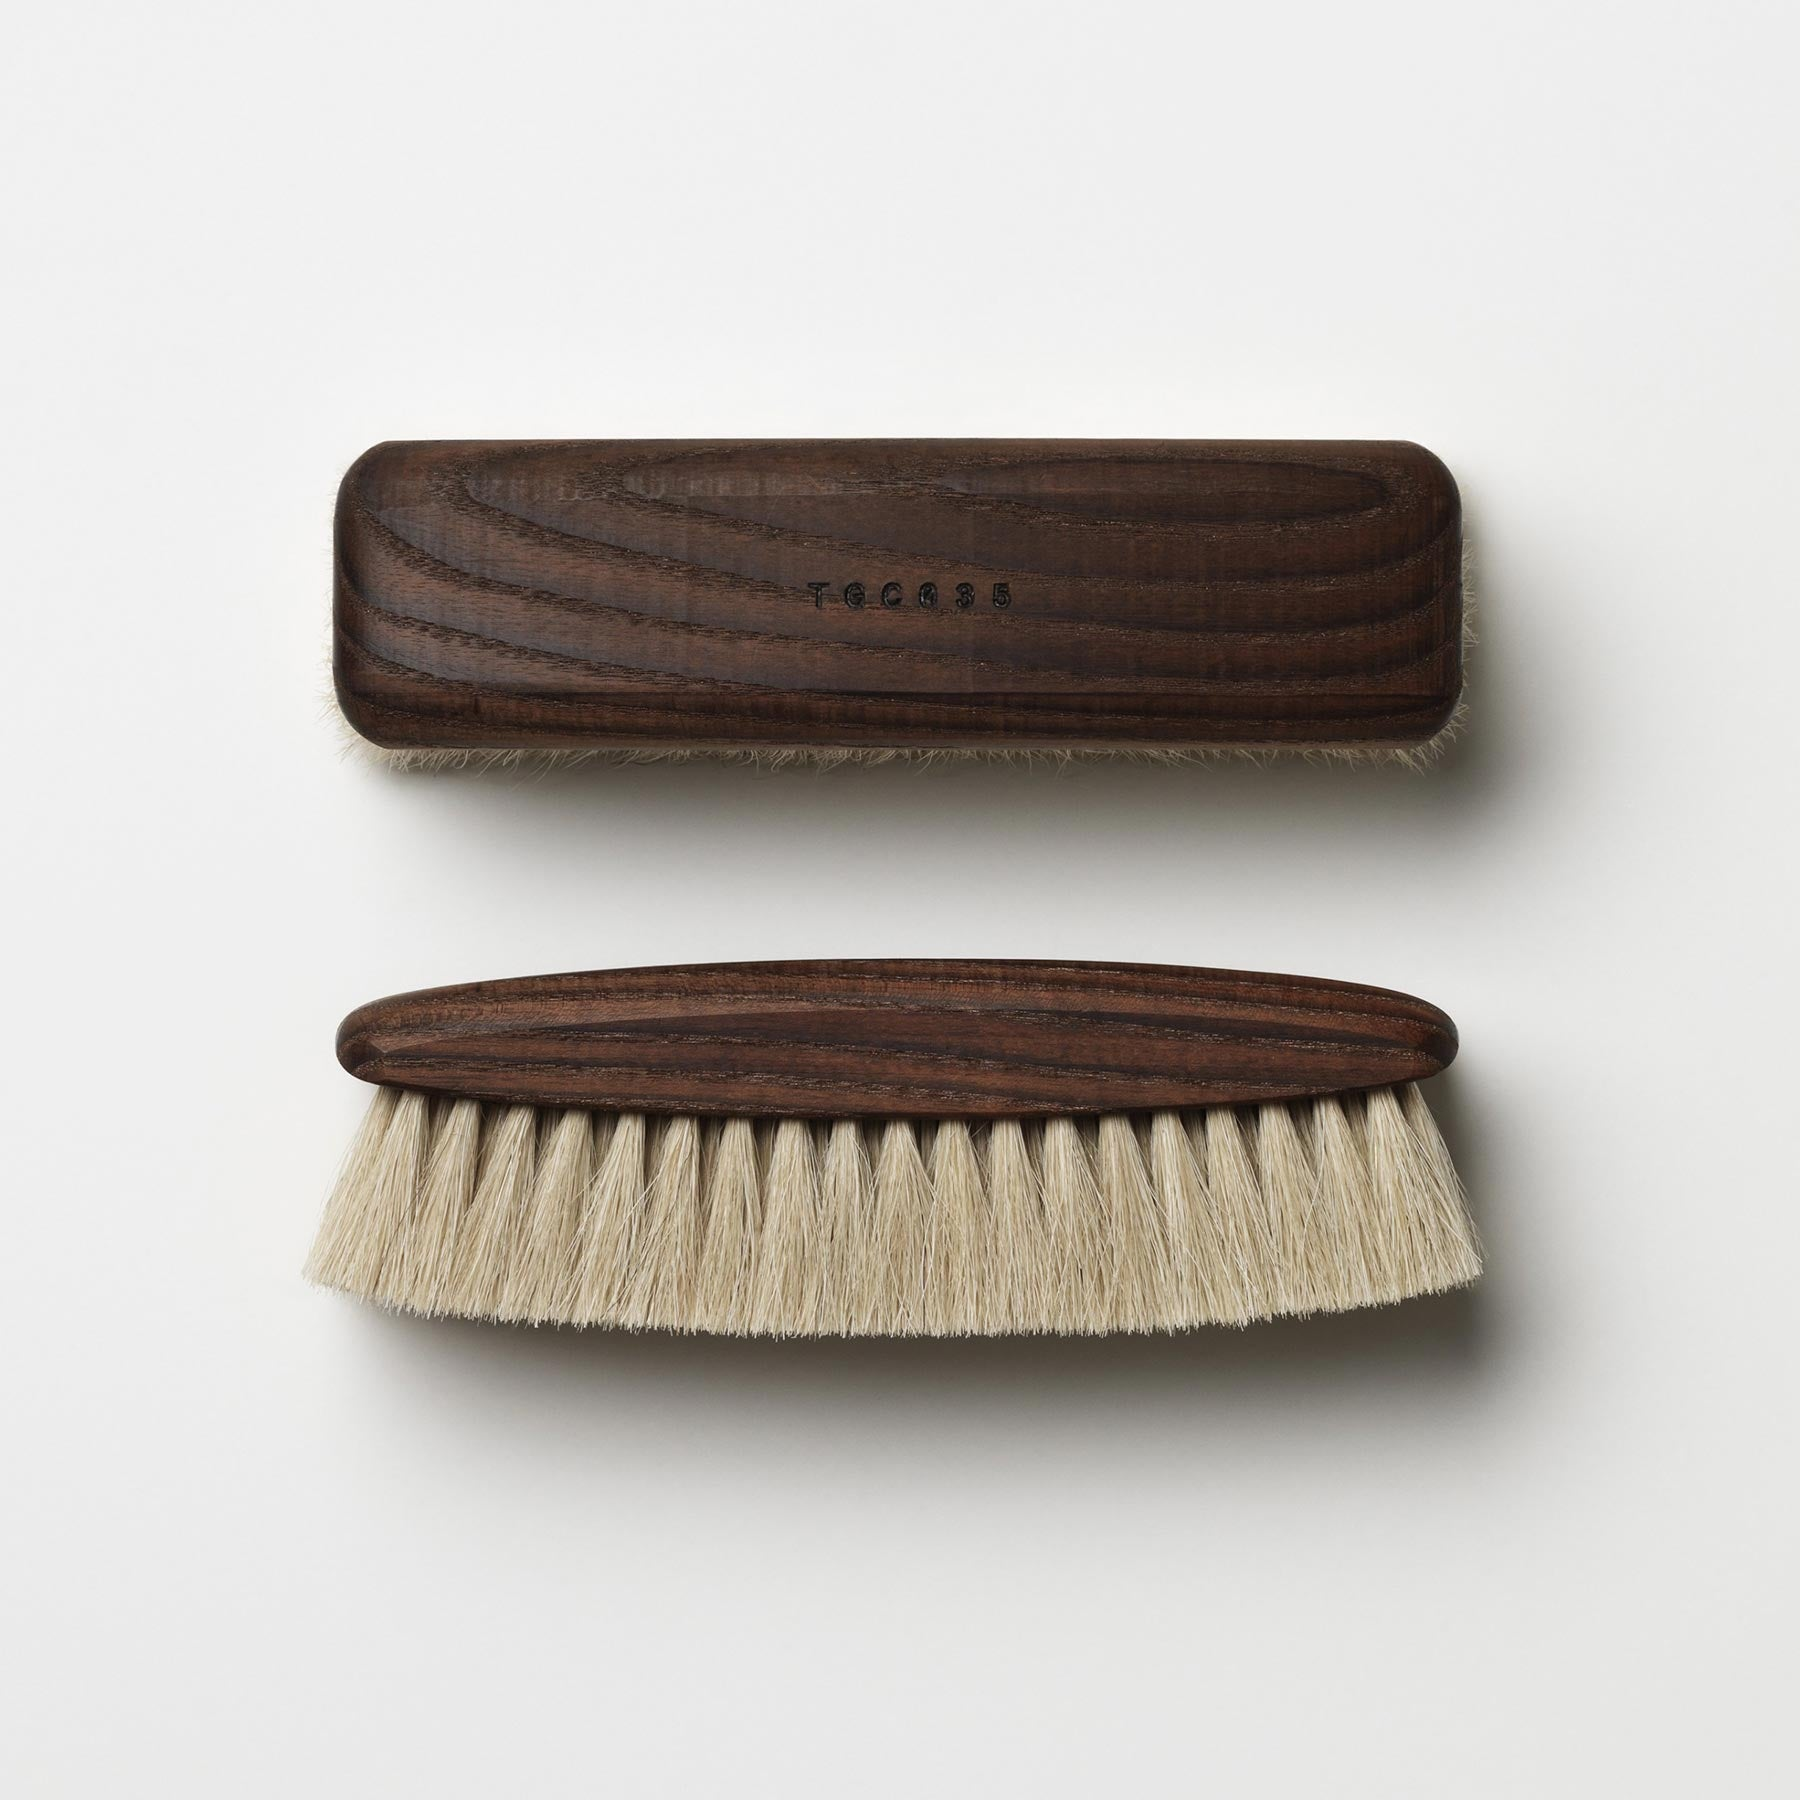 TGC035 light shoe brush